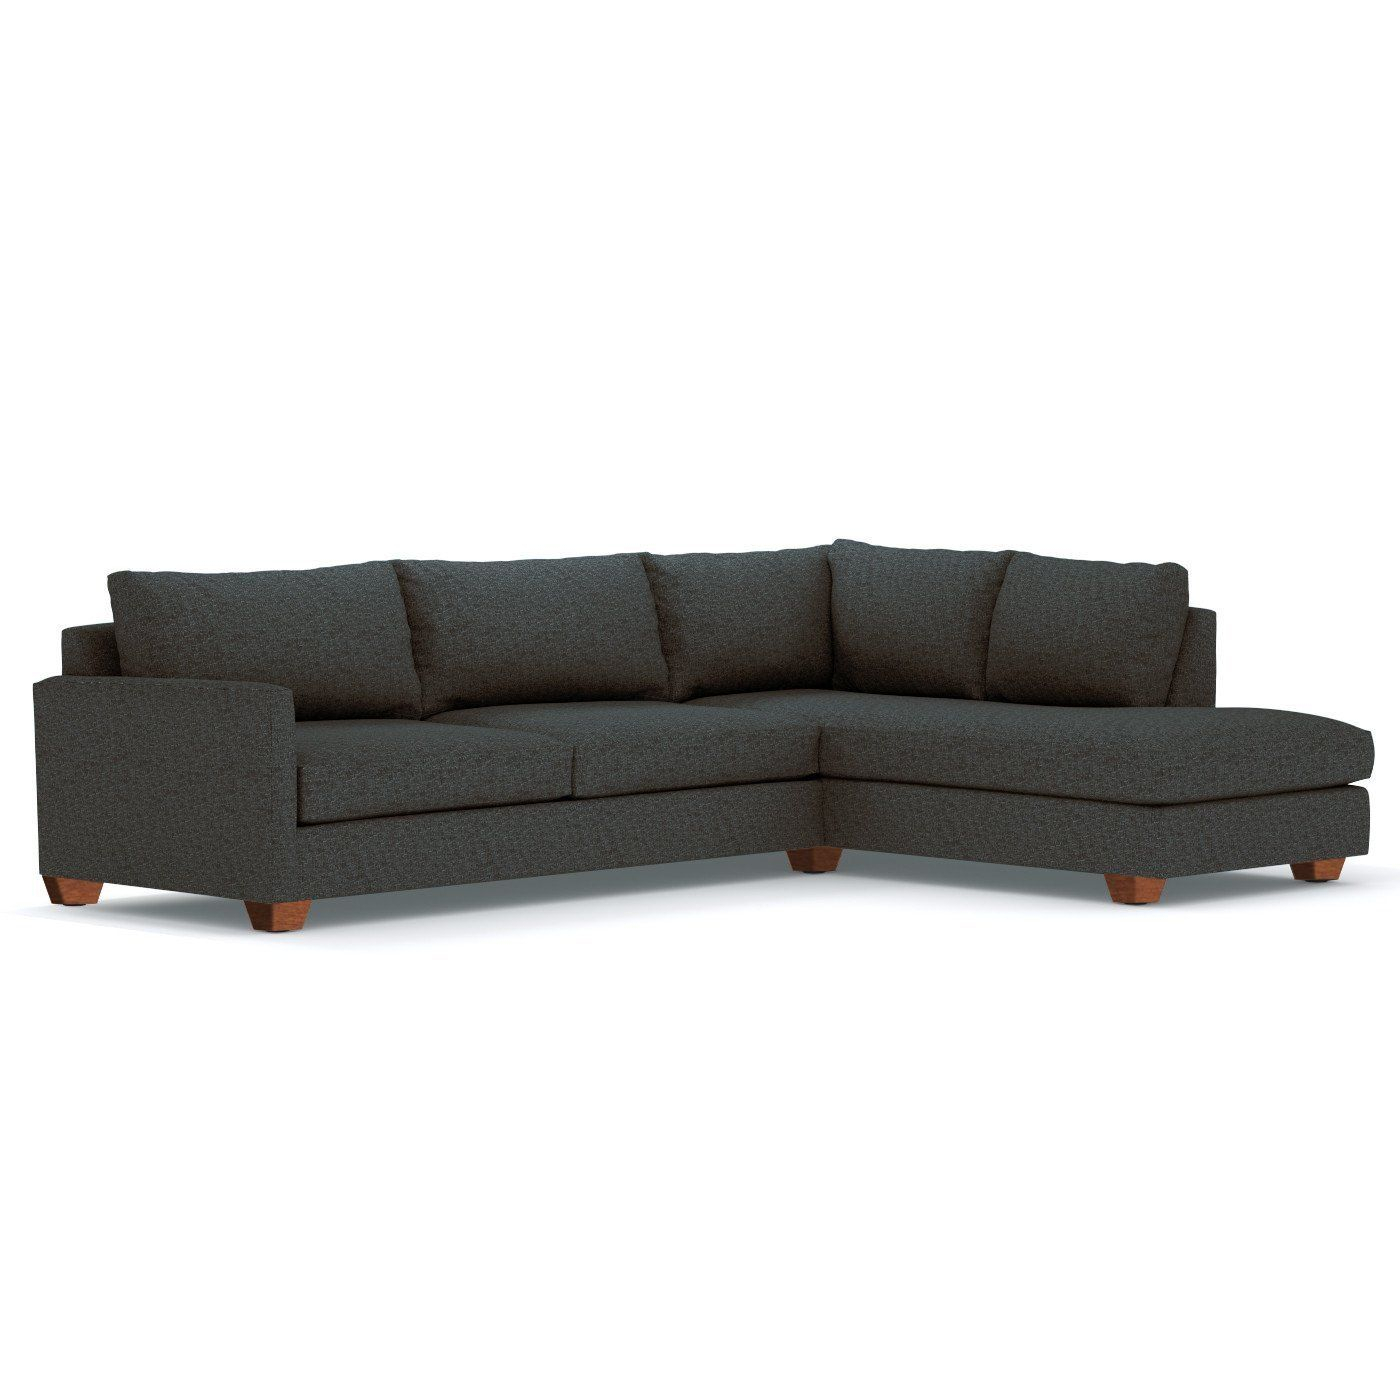 Apt 2B Tuxedo Two Piece Sectional Sofa | Furniture | Pinterest Intended For Patterson Ii Arm Sofa Chairs (Image 3 of 25)